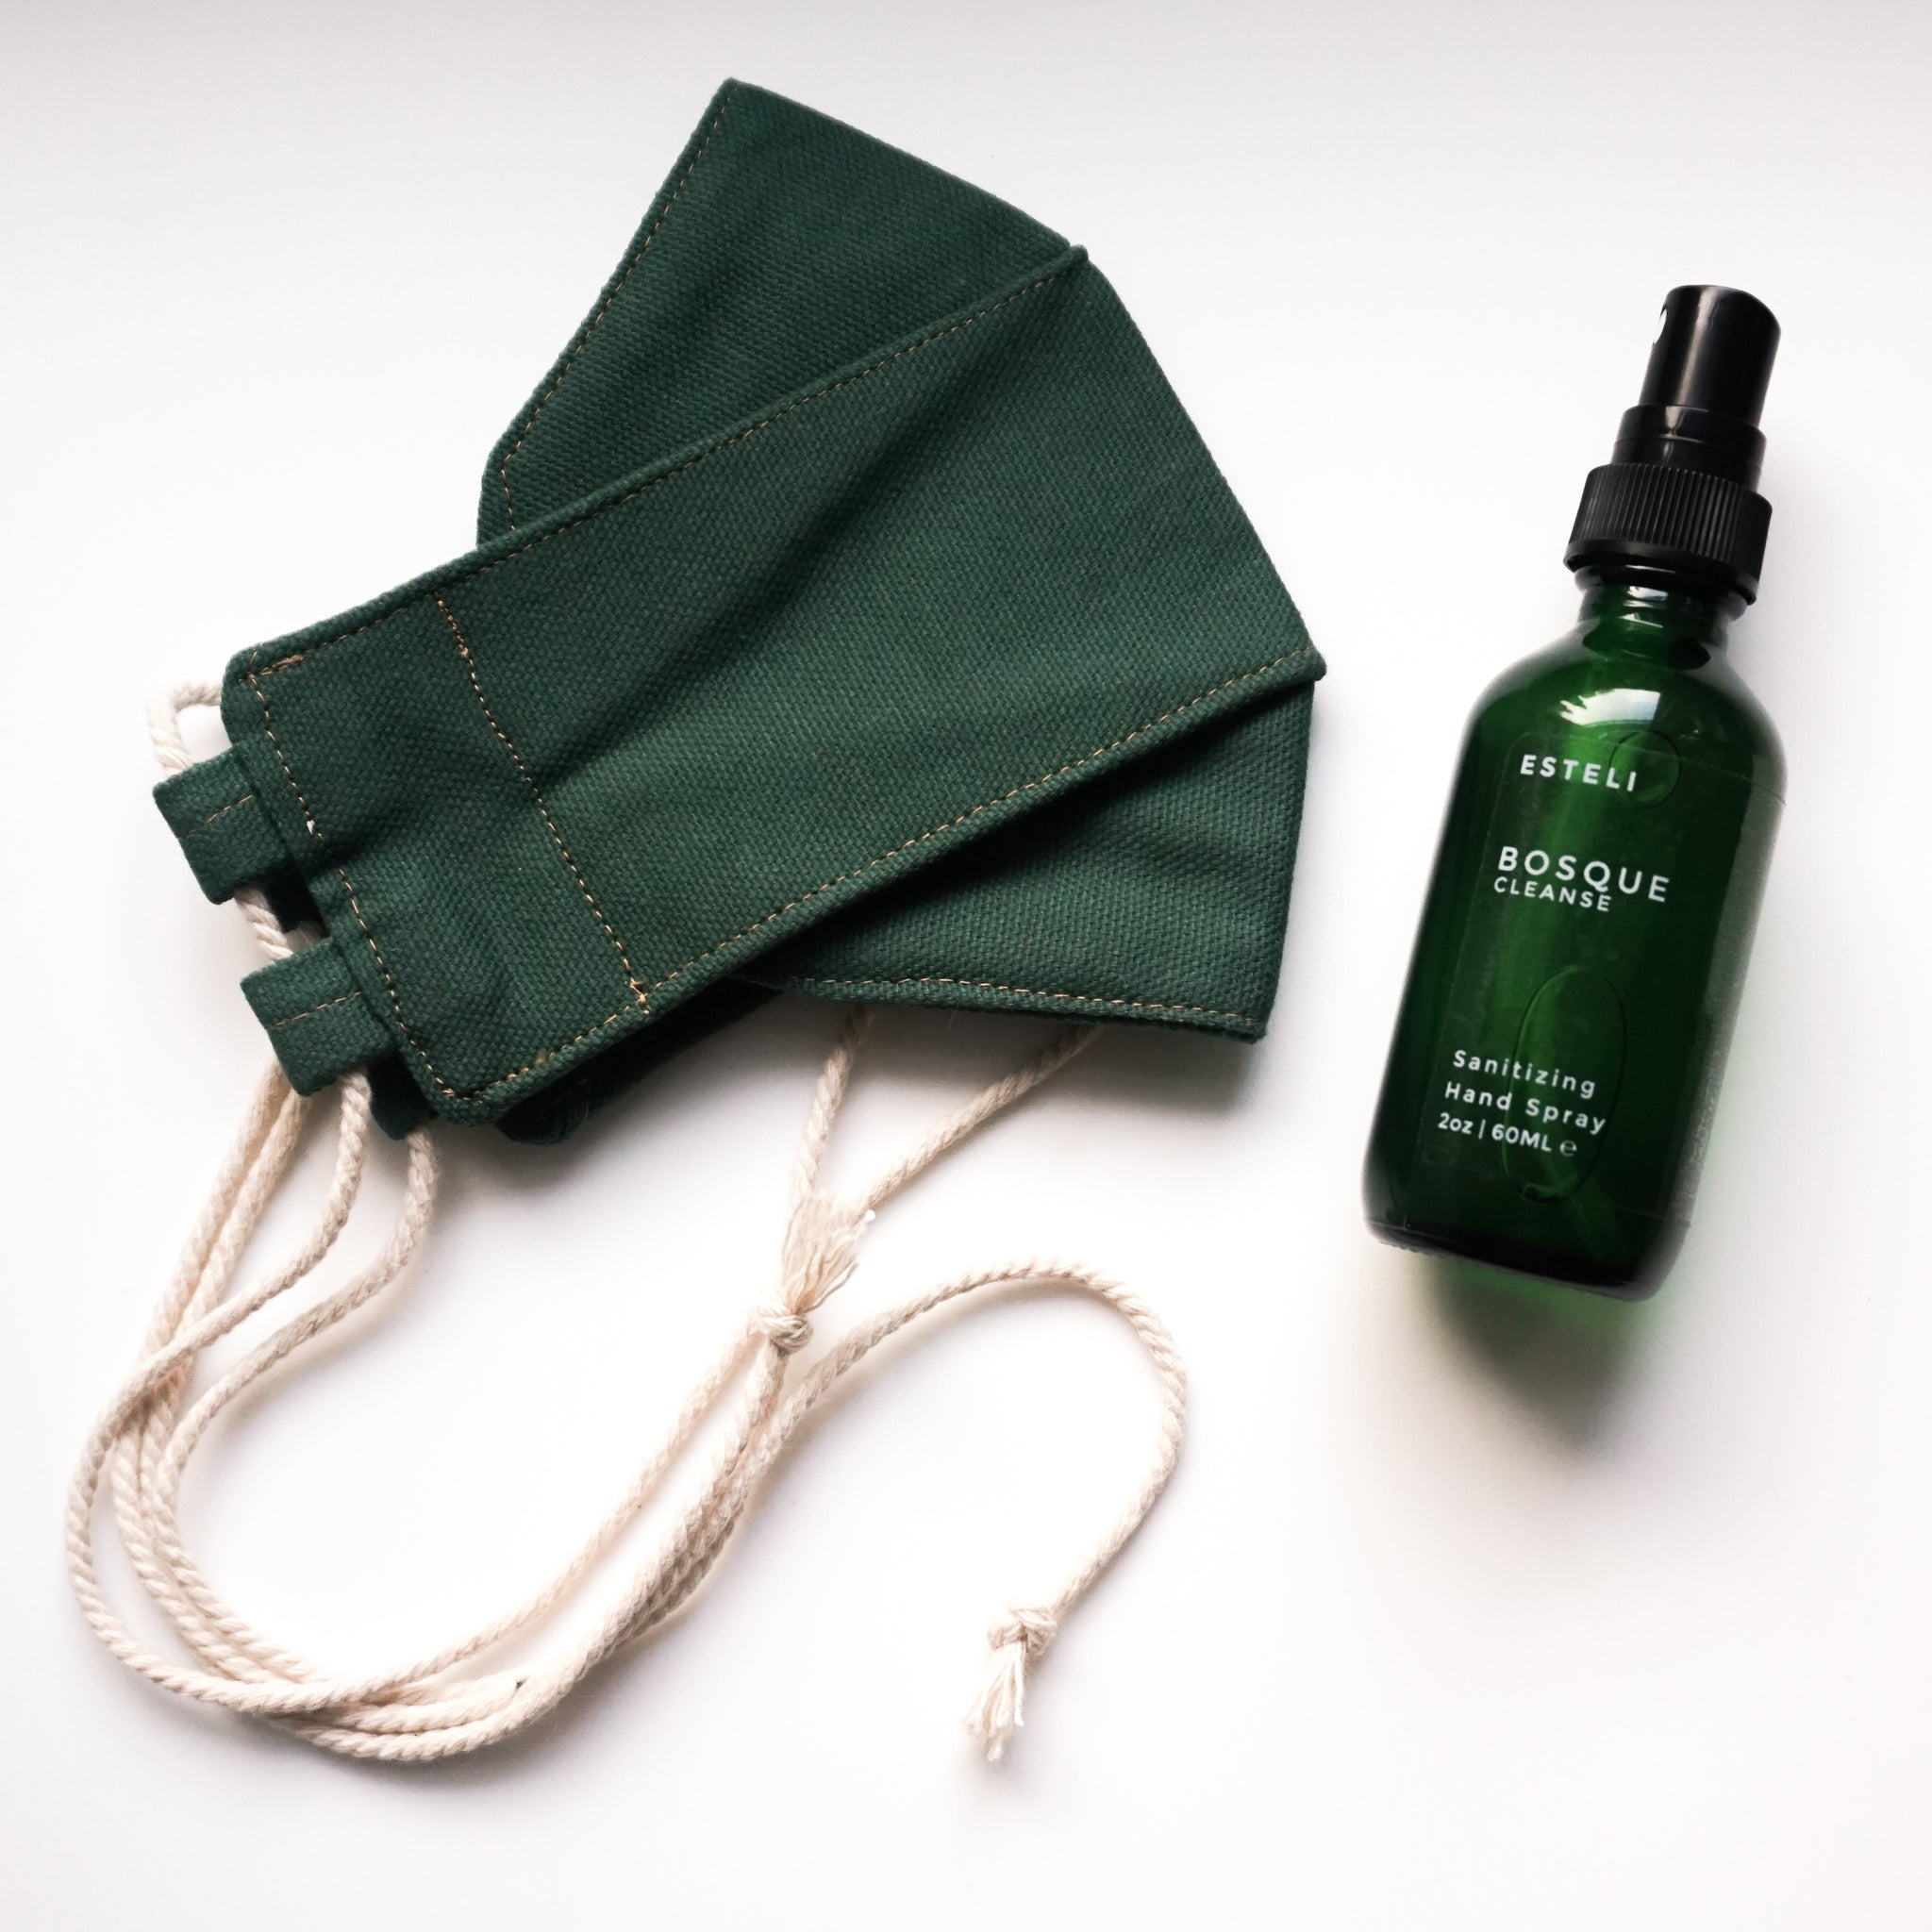 CLEANSE & PROTECT - Sanitizing Hand Spray + Origami Canvas Face Mask Set